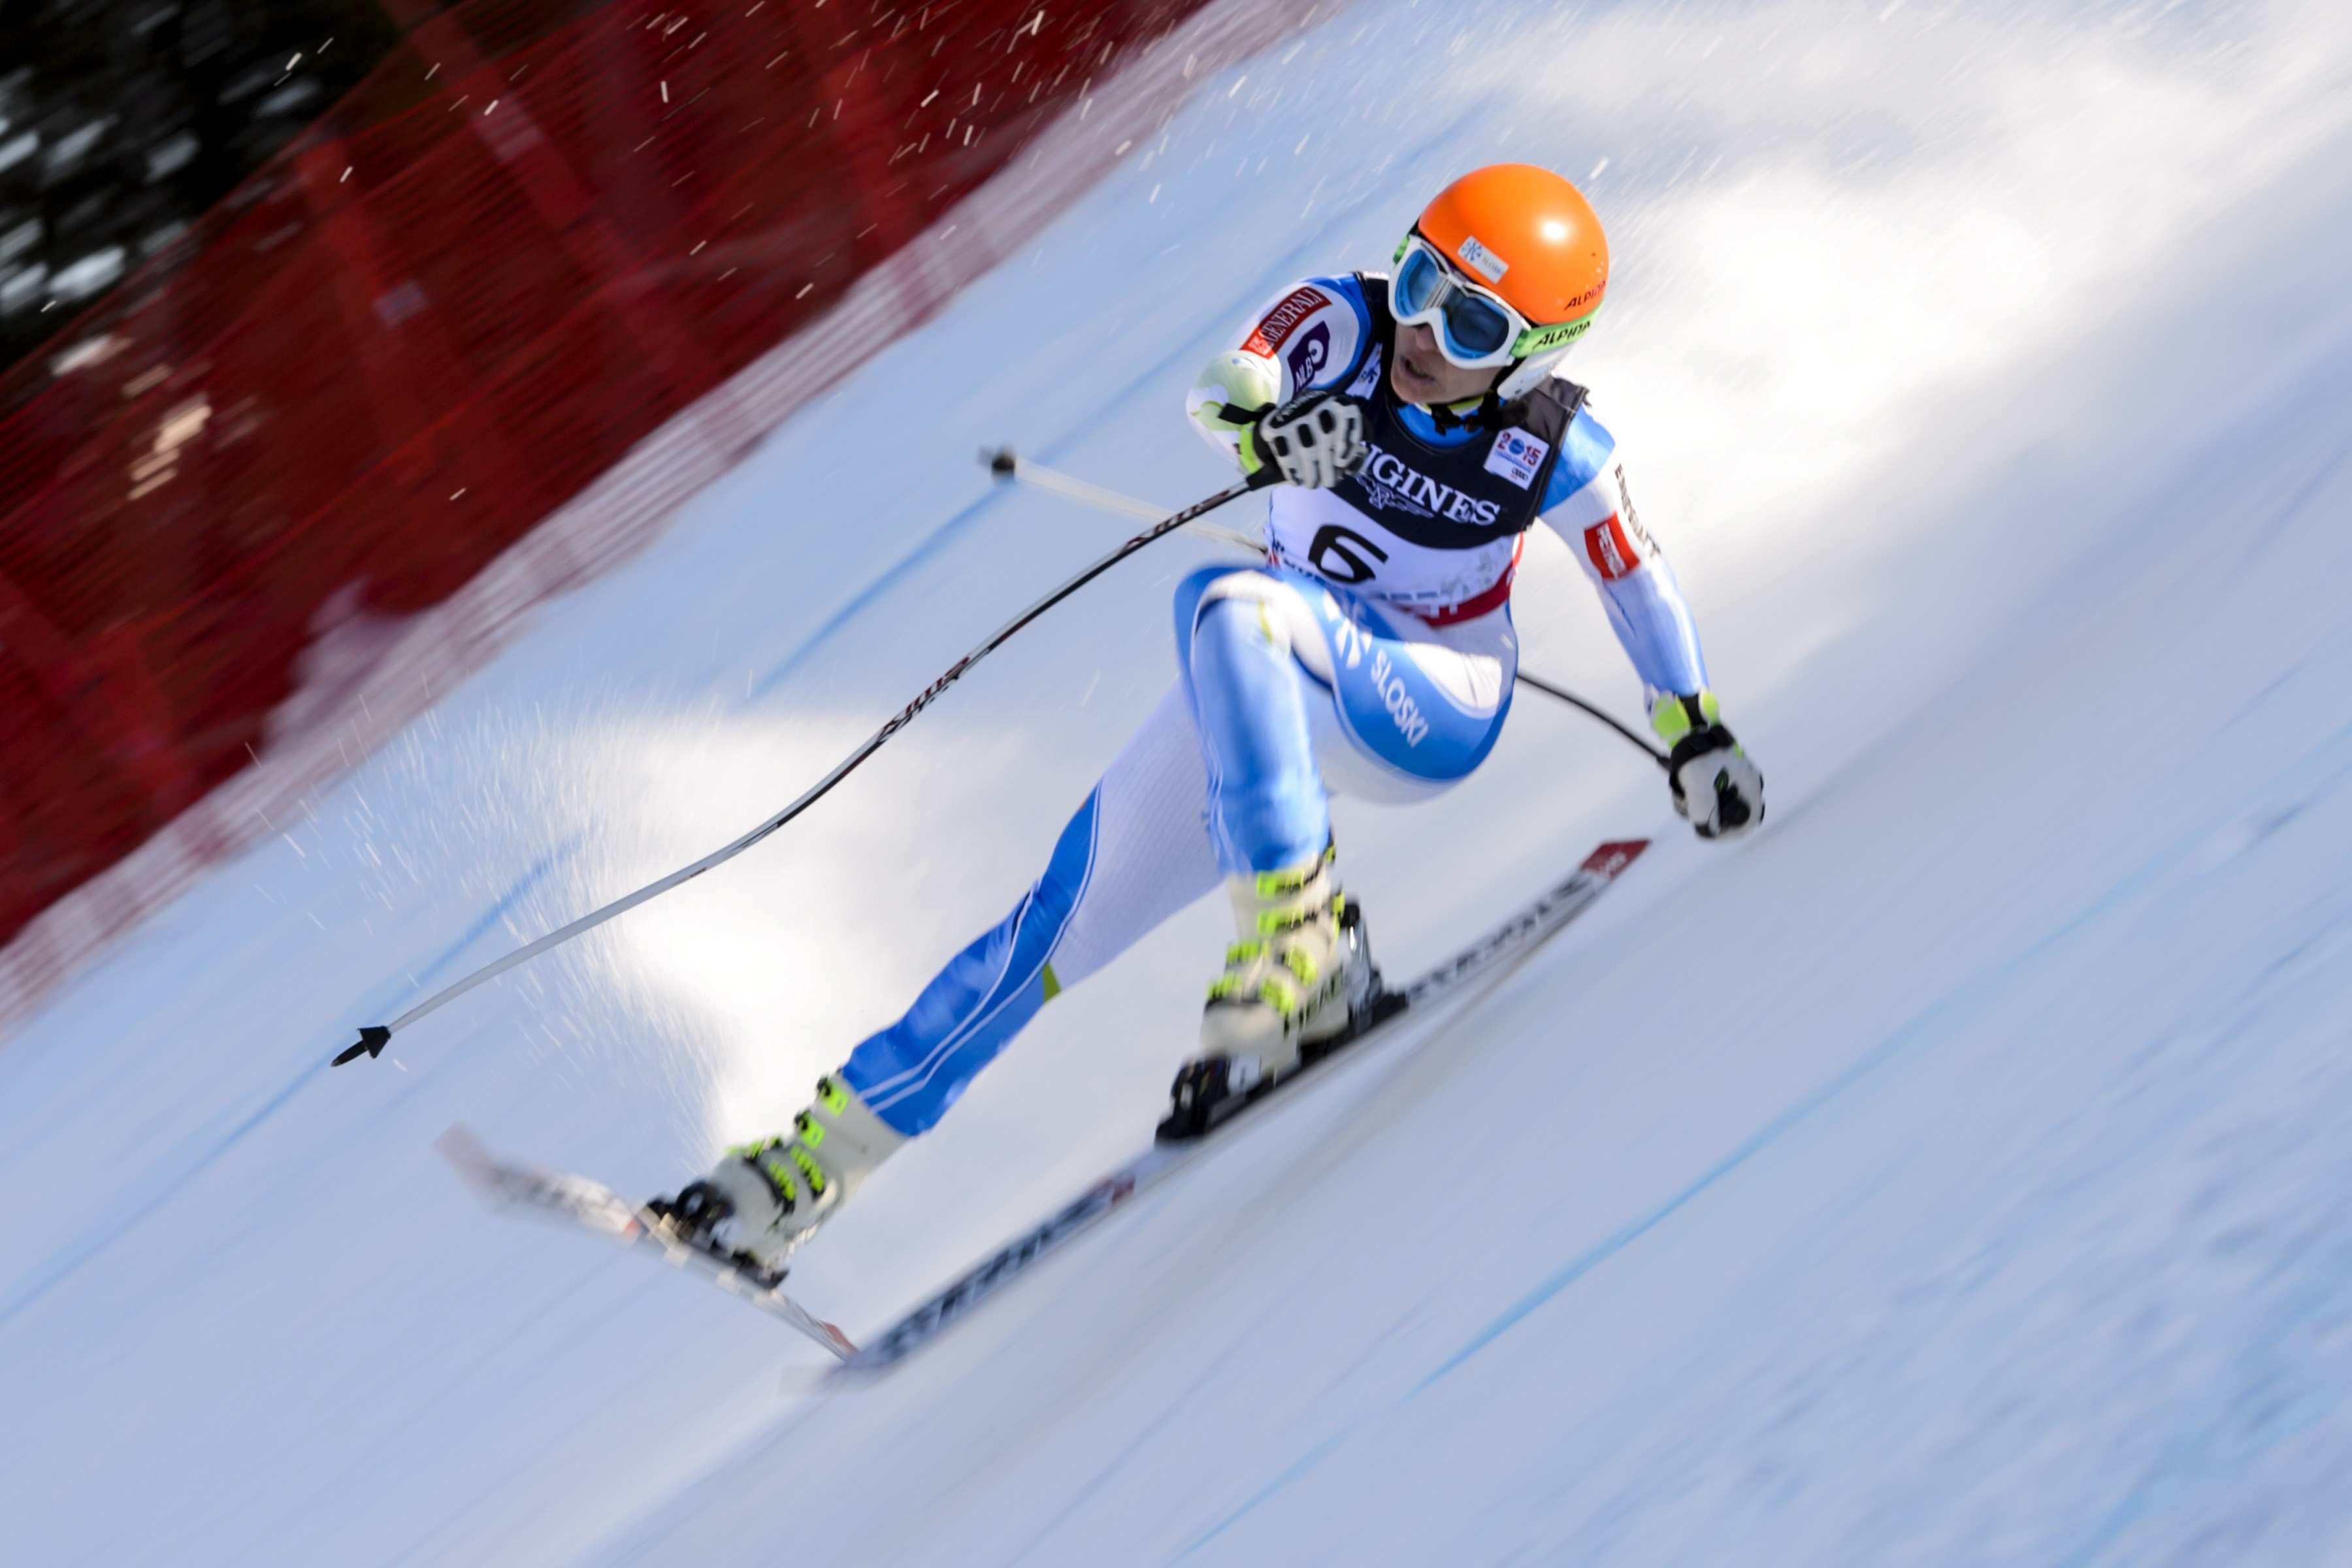 Slovenia's Vanja Brodnik loses her balance during the 2015 World Alpine Ski Championships women's combined downhill, on February 9, 2015 in Beaver Creek, Colorado.  AFP PHOTO / FABRICE COFFRINI        (Photo credit should read FABRICE COFFRINI/AFP/Getty Images)